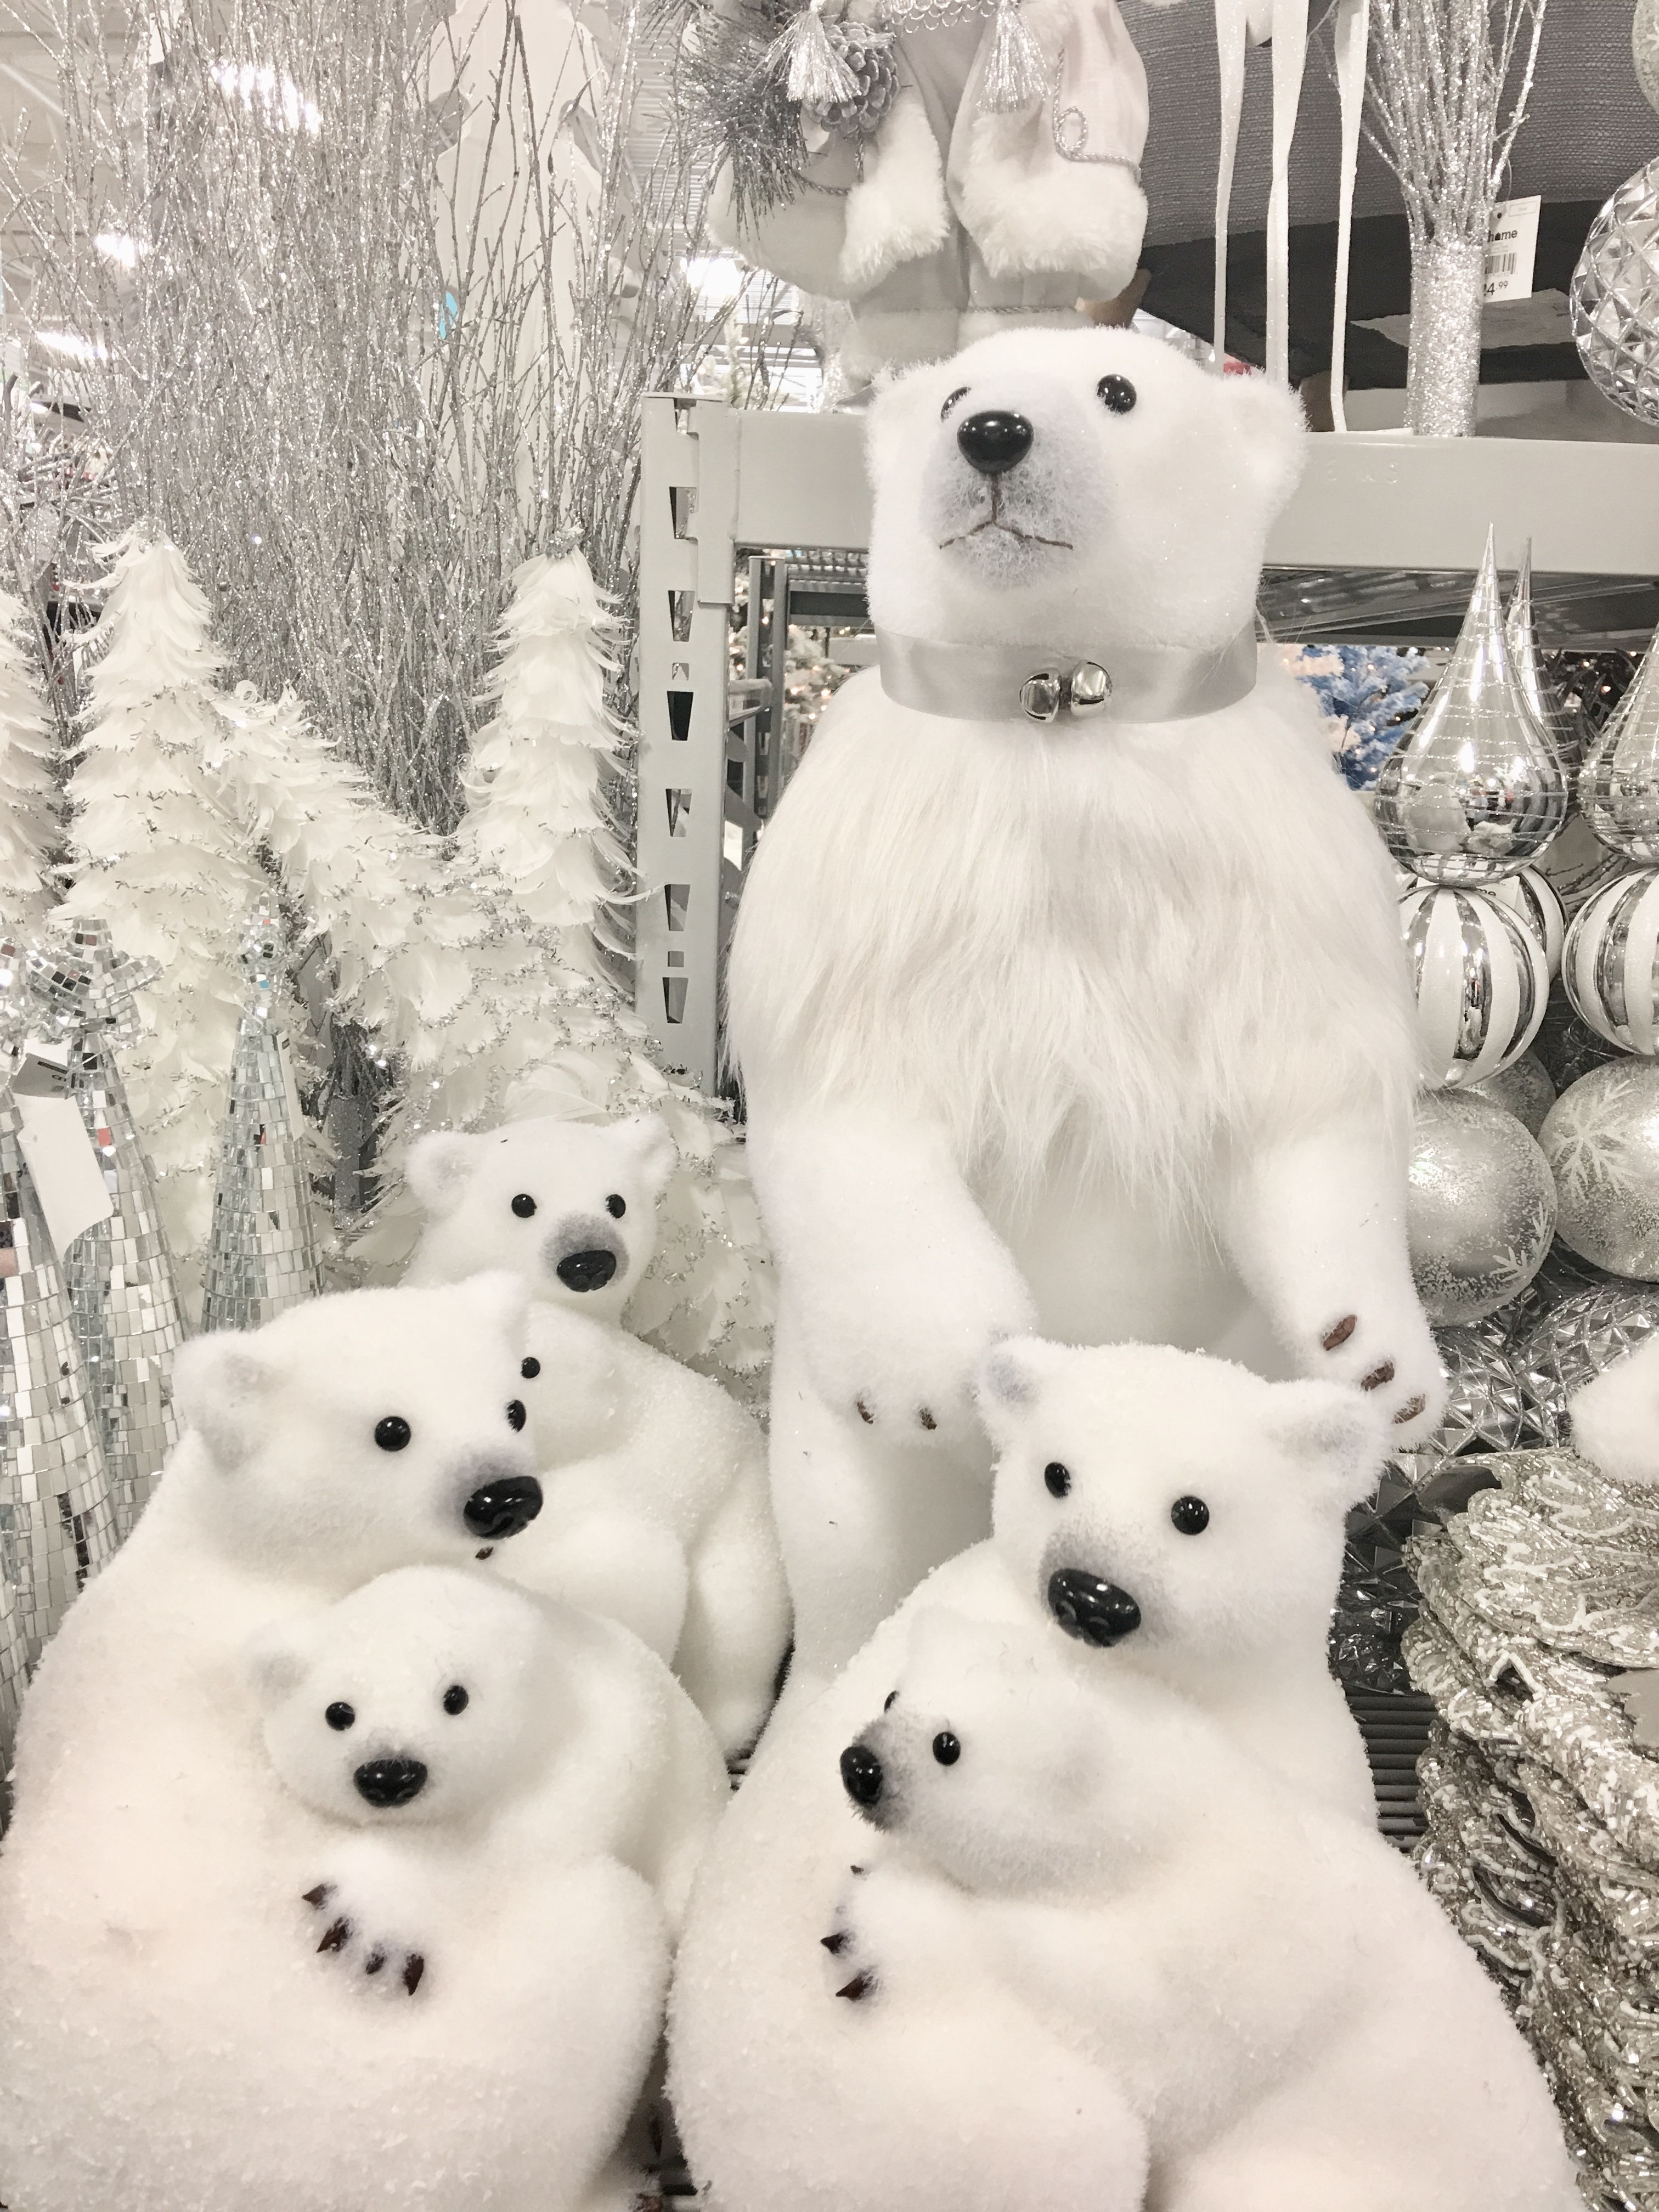 Lots Of White Polar Bears For Christmas Decor In At Athome Stores So Cute Woodland Christmas Decor Polar Bear Christmas Bear Decor